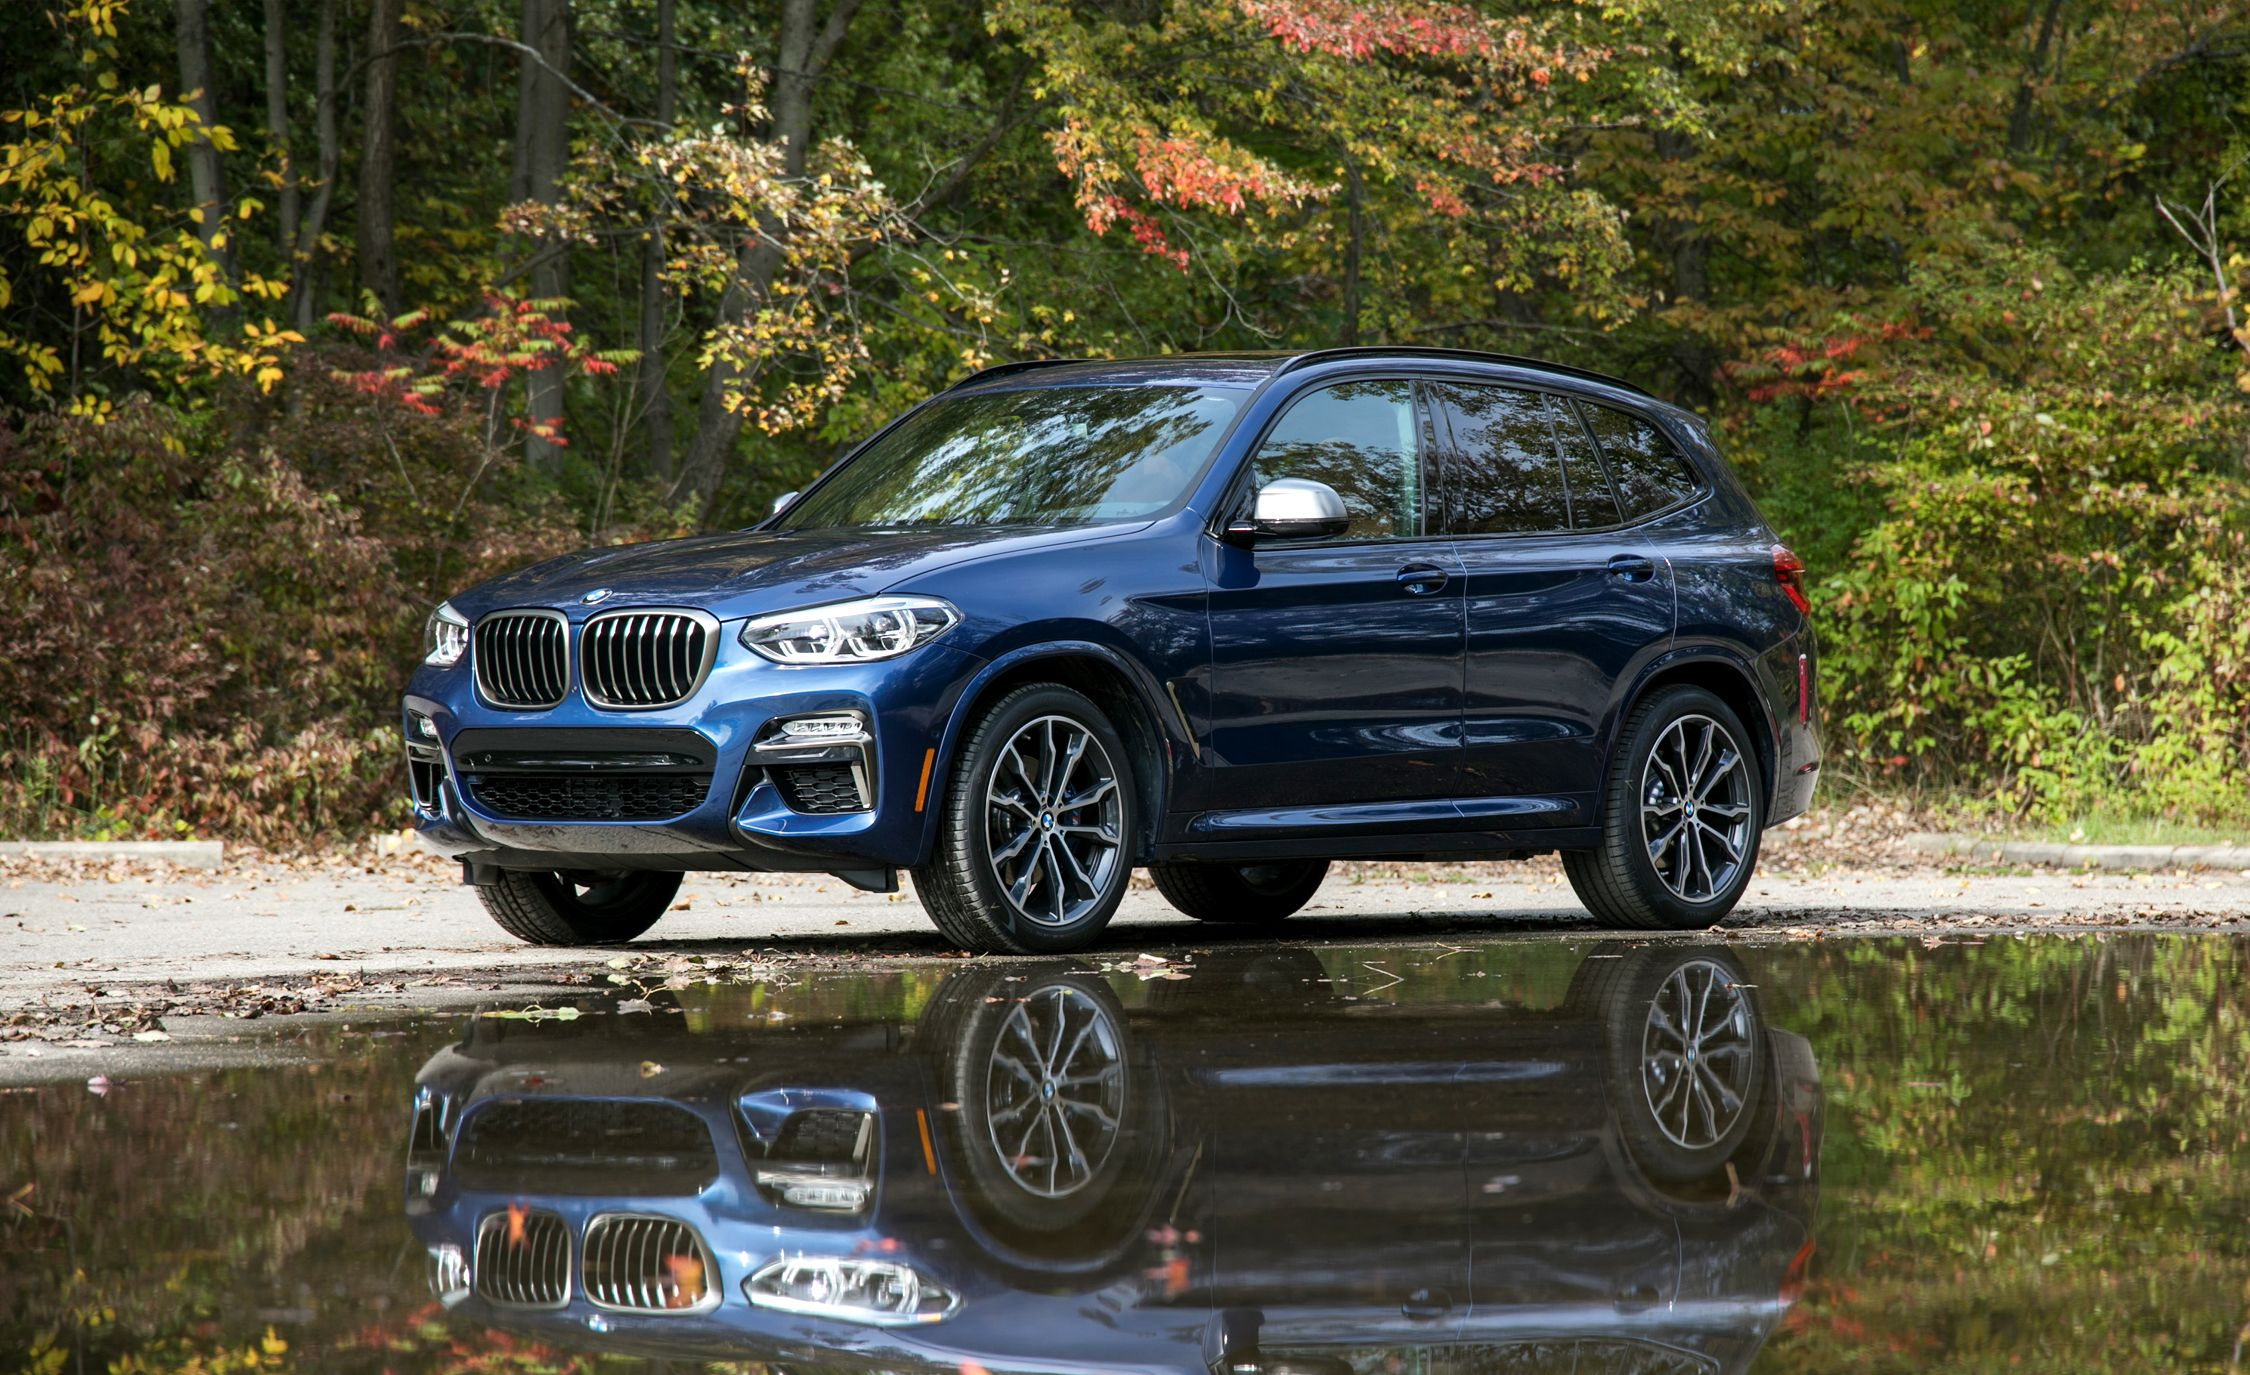 bmw x3 reviews bmw x3 price photos and specs car and driver. Black Bedroom Furniture Sets. Home Design Ideas